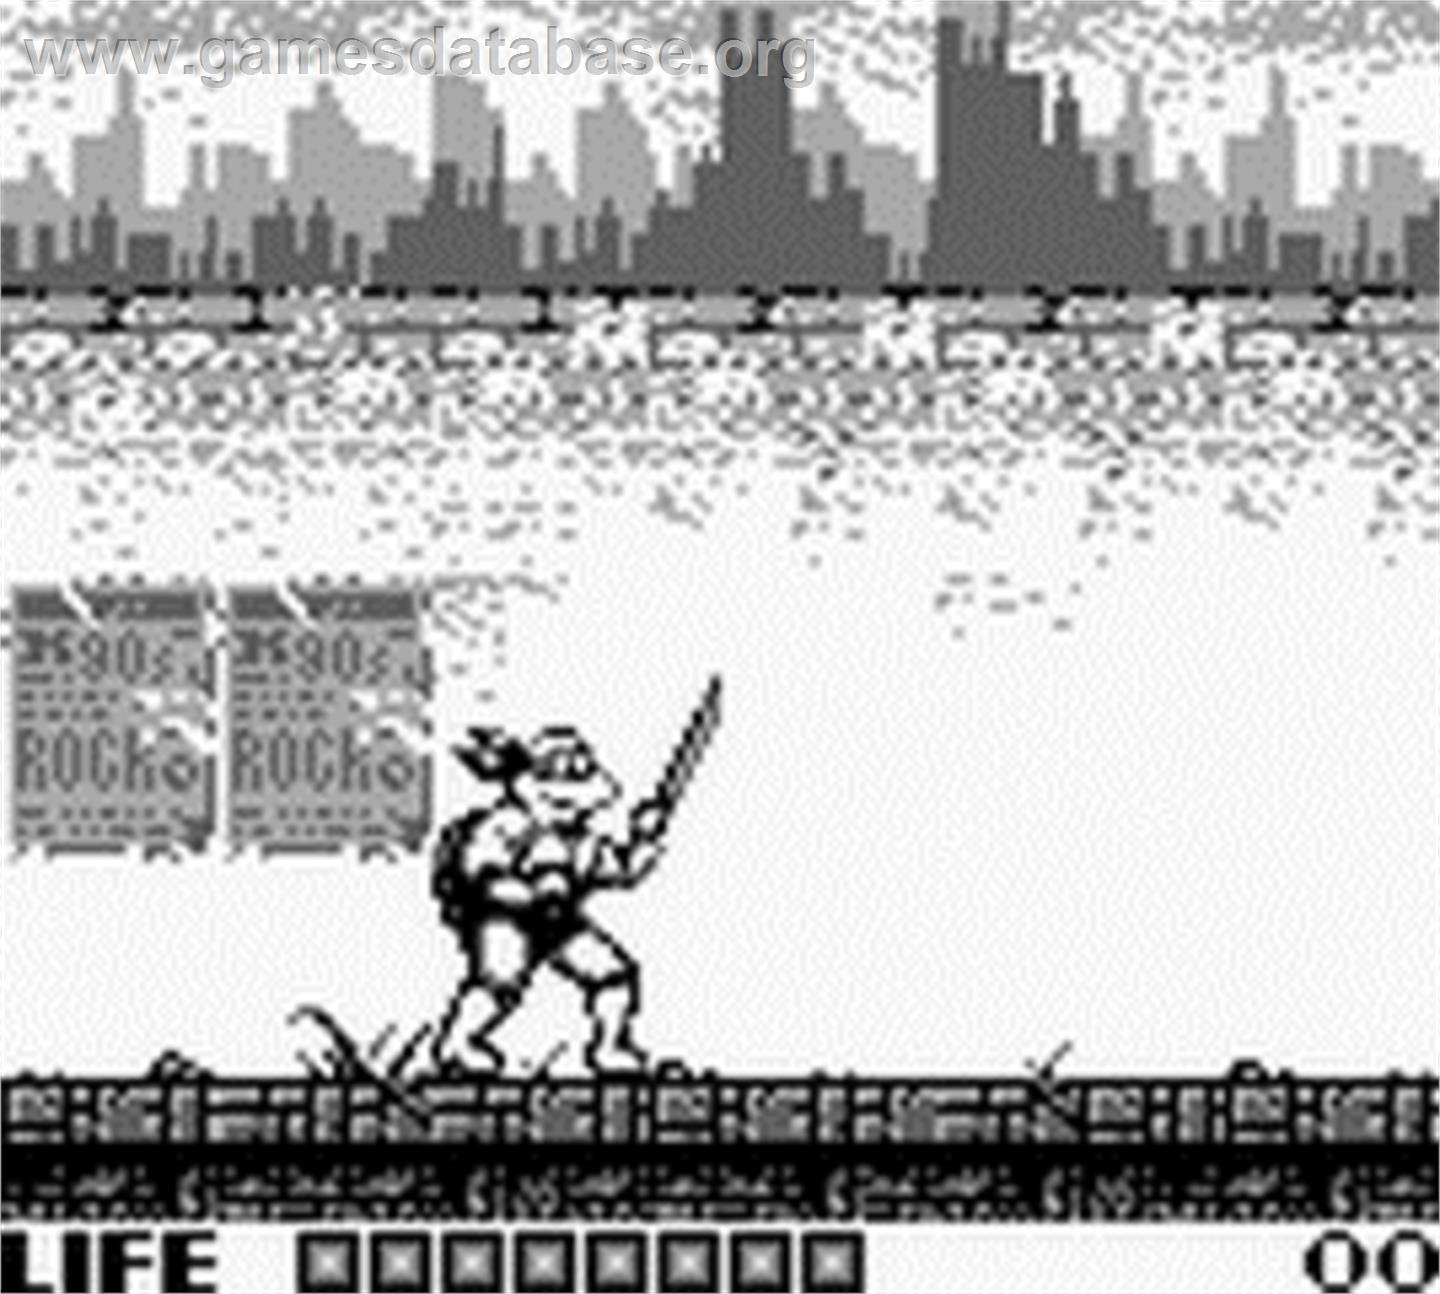 Teenage Mutant Ninja Turtles:  Fall of the Foot Clan - Nintendo Game Boy - Artwork - In Game